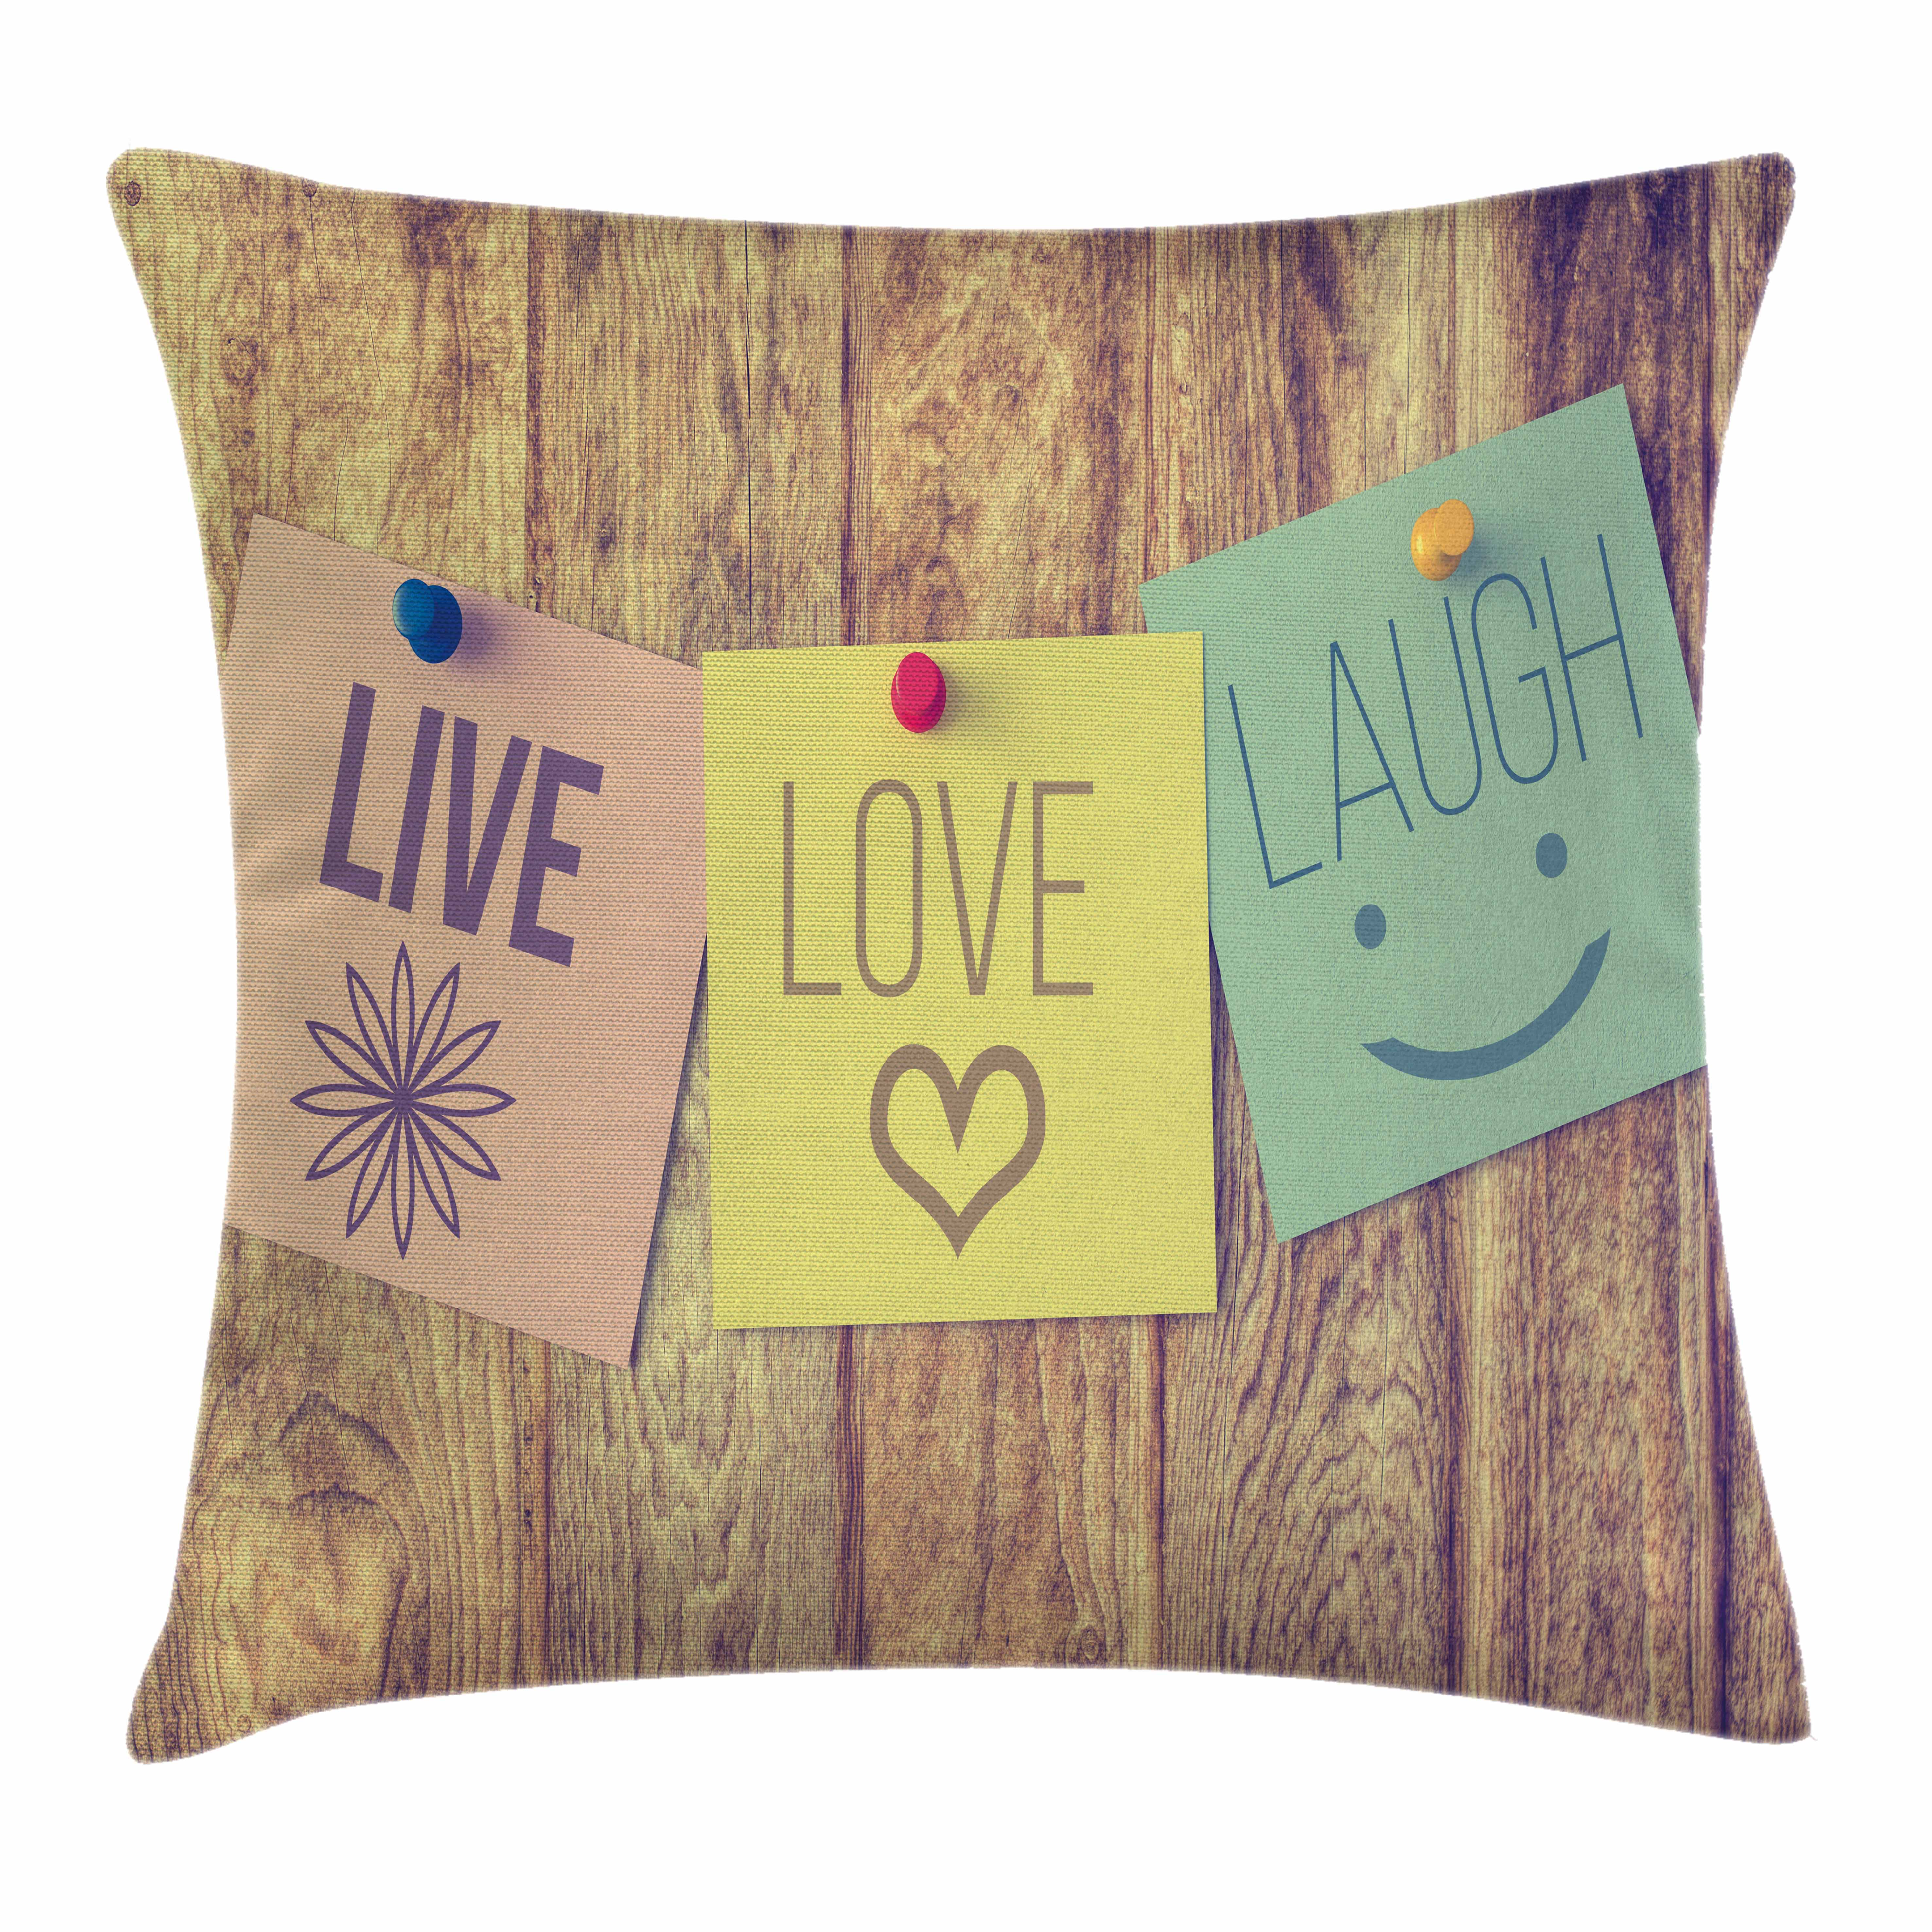 Live Laugh Love Decor Throw Pillow Cushion Cover, Inspirational Wisdom Post-It Perks on Wooden Rustic Background Image, Decorative Square Accent Pillow Case, 16 X 16 Inches, Multicolor, by Ambesonne